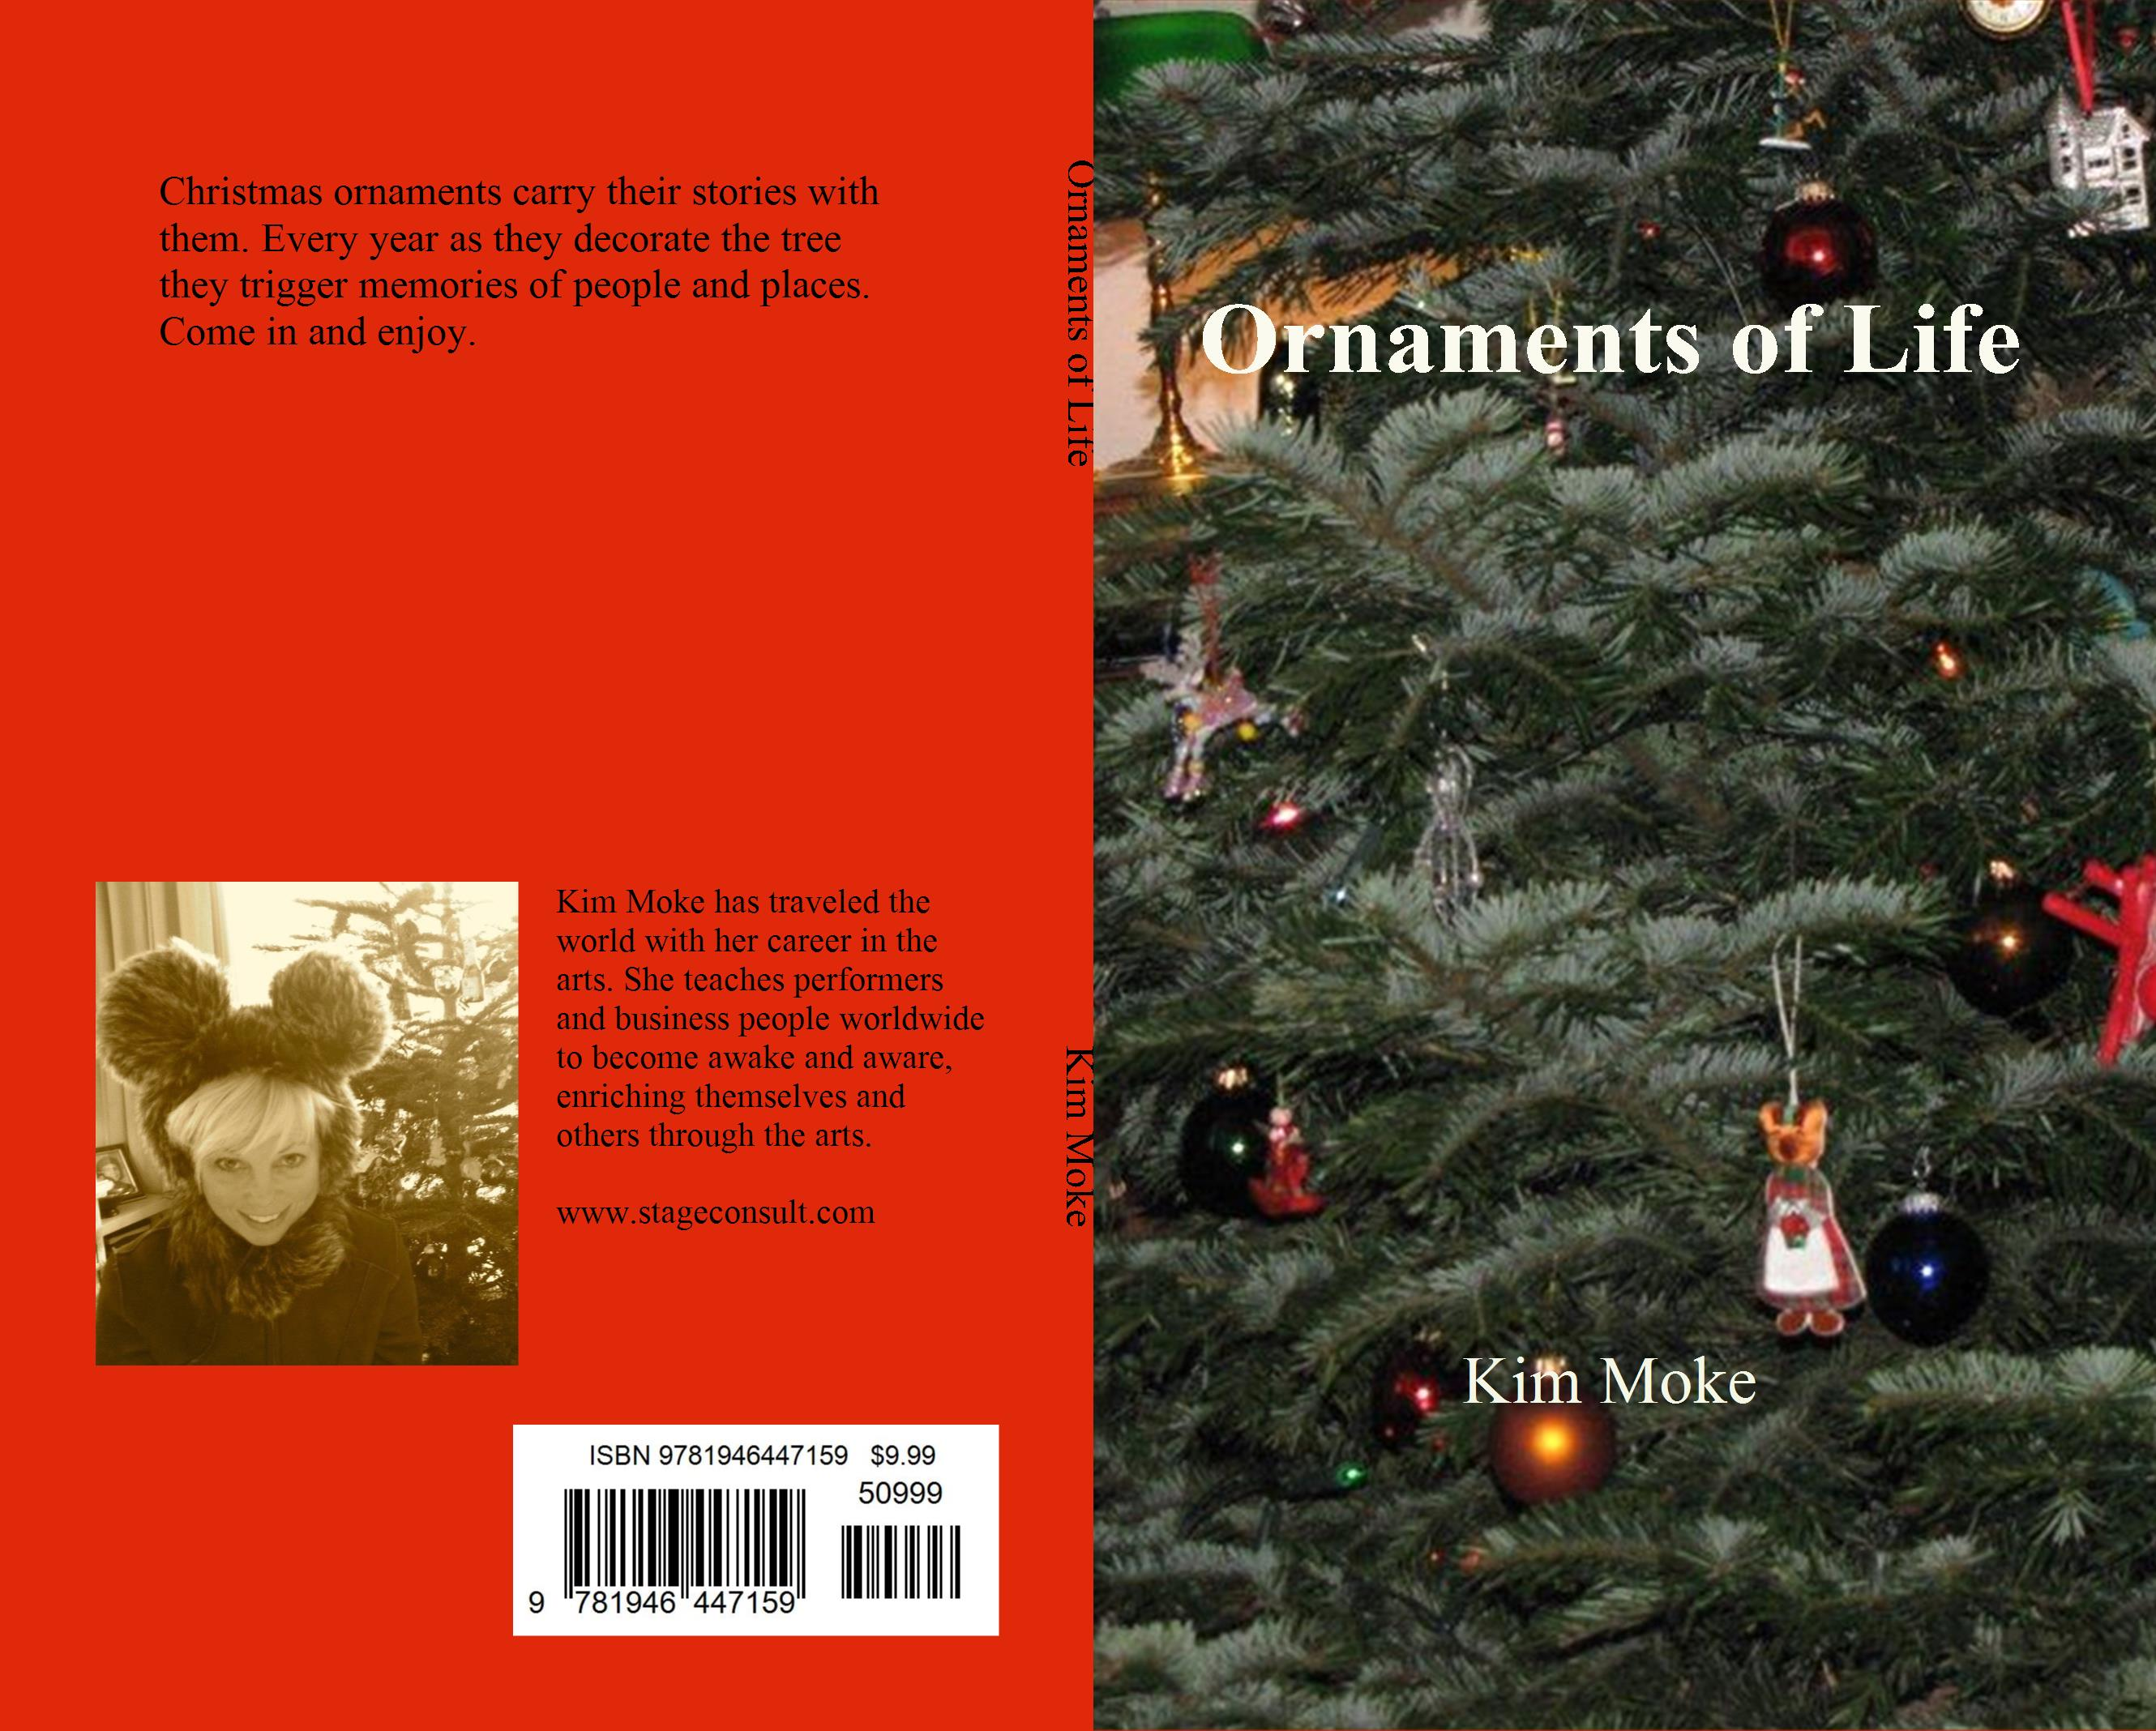 Career christmas ornaments -  Ornaments Of Life Cover Image